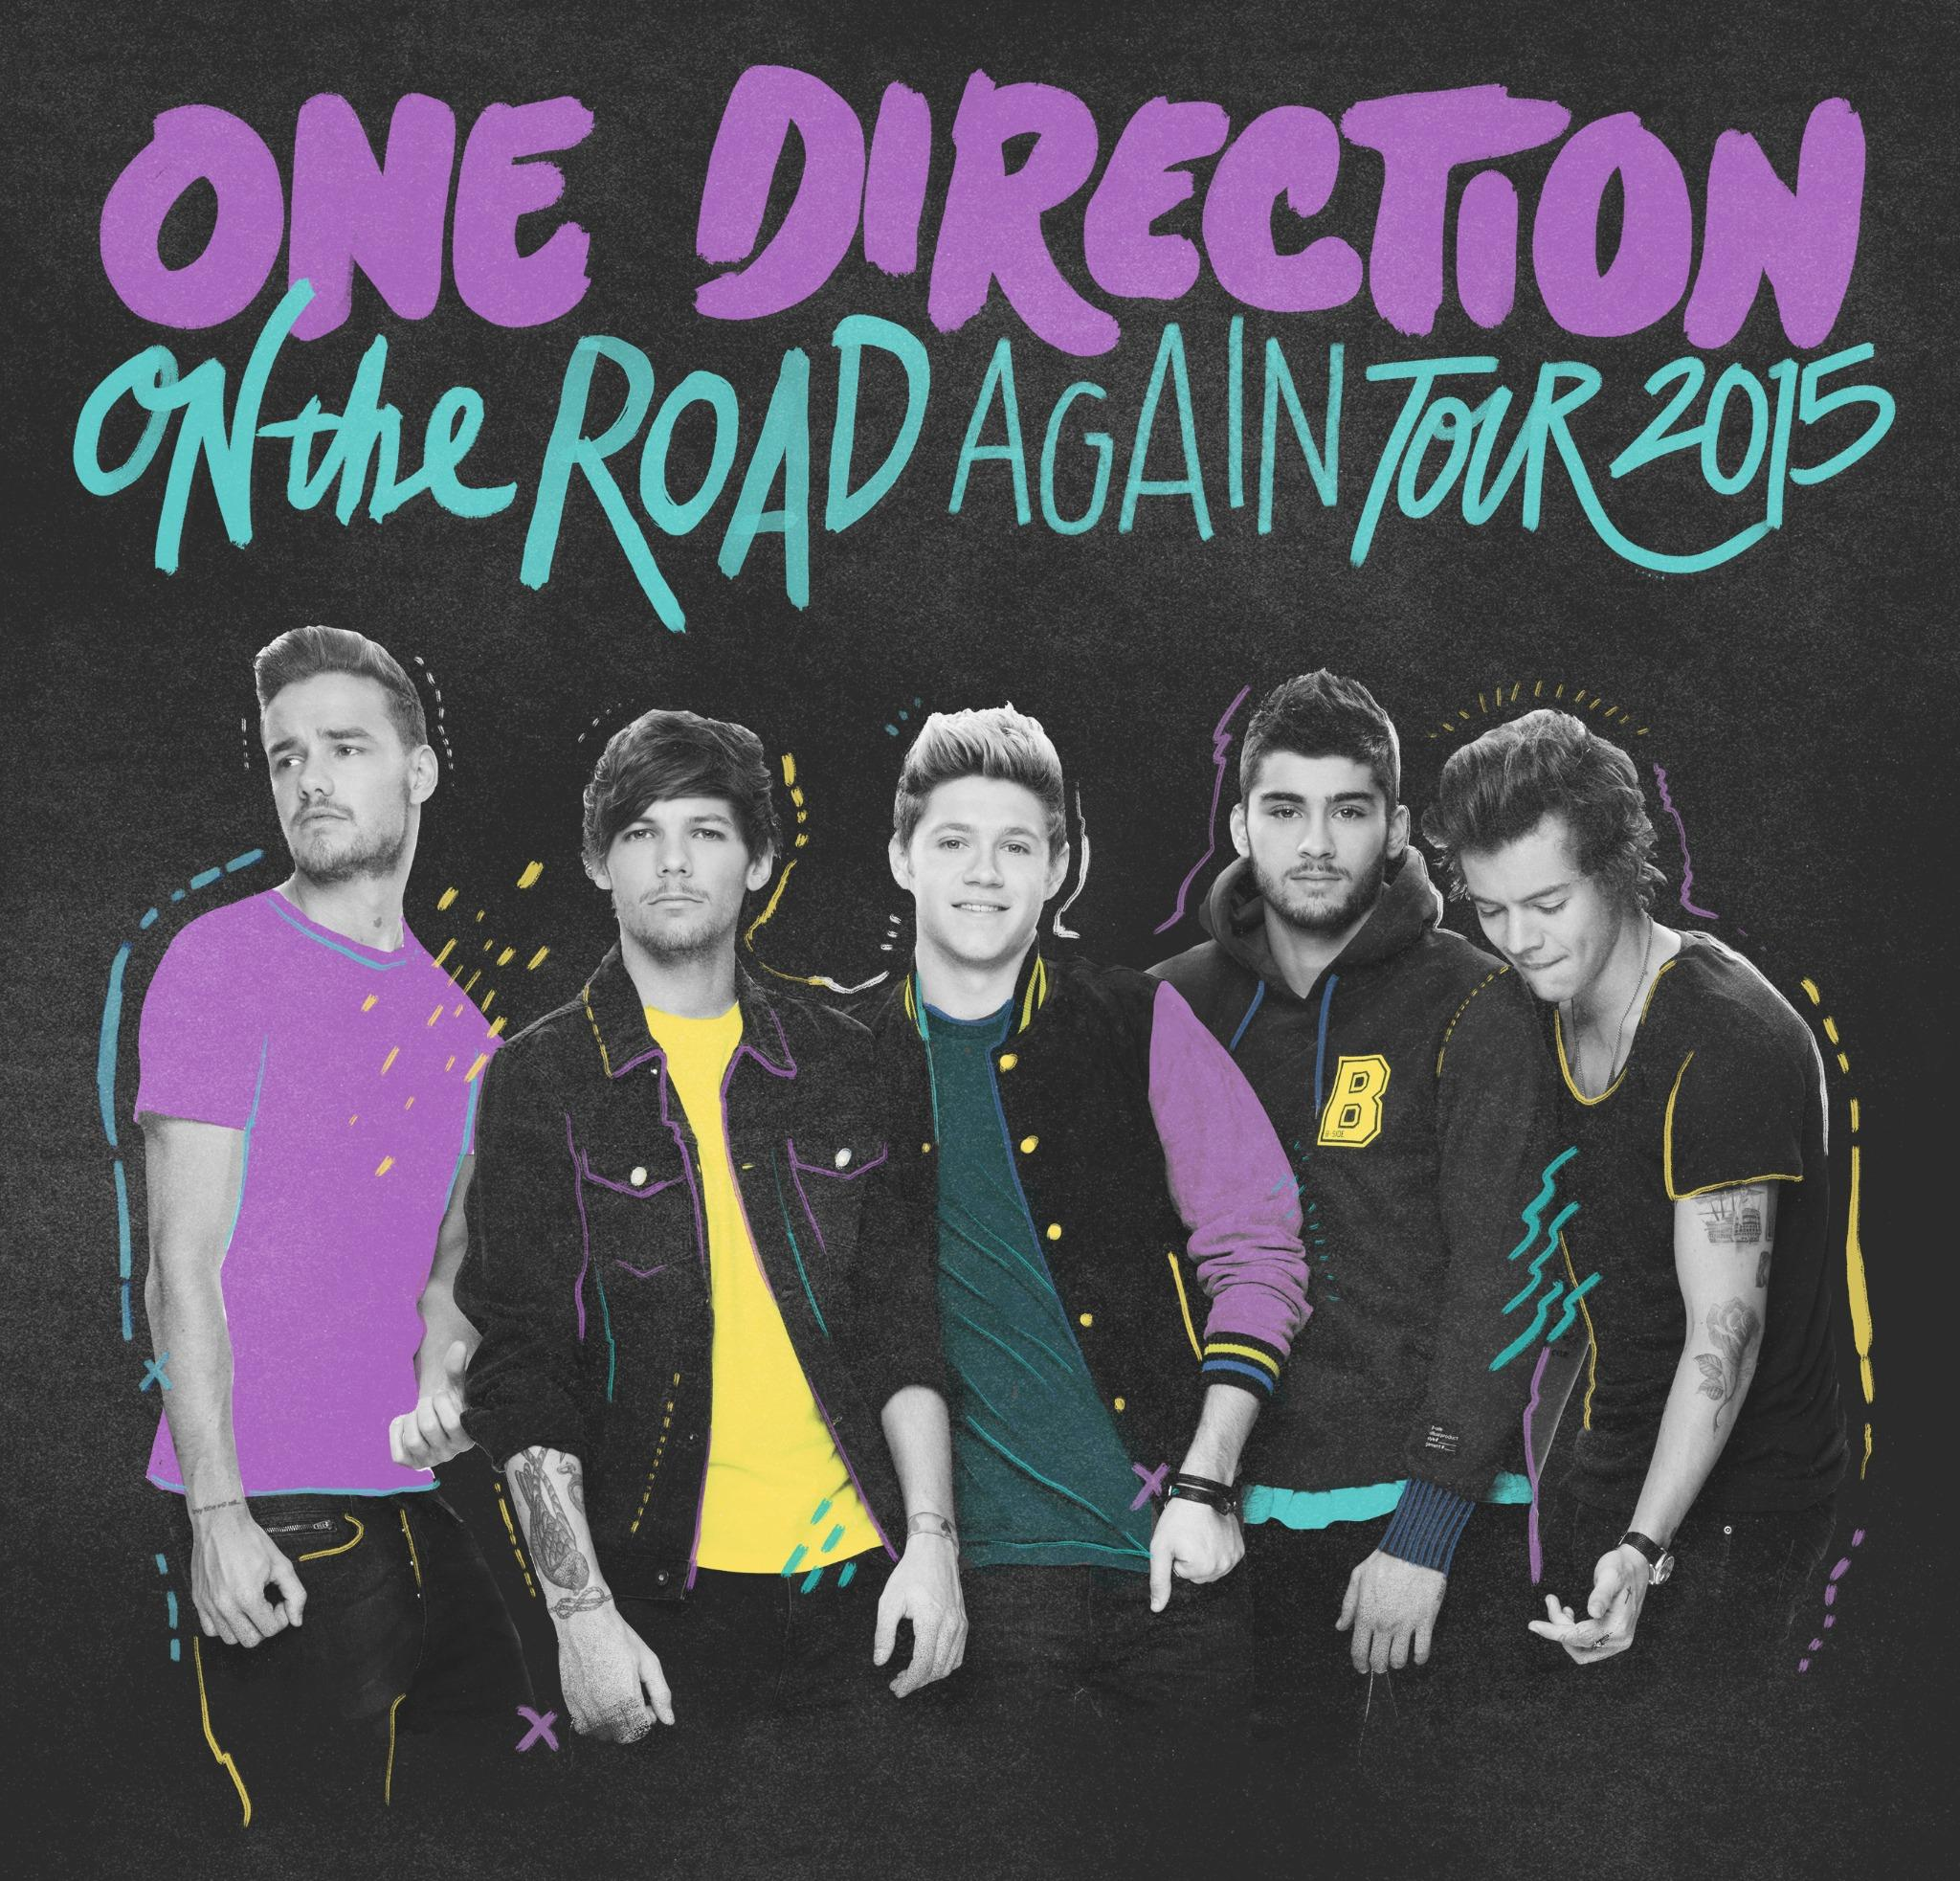 Canada – the guys have added some more #OnTheRoadAgain2015 dates! http://t.co/oZeaw8qcne http://t.co/ygiRhln0m3